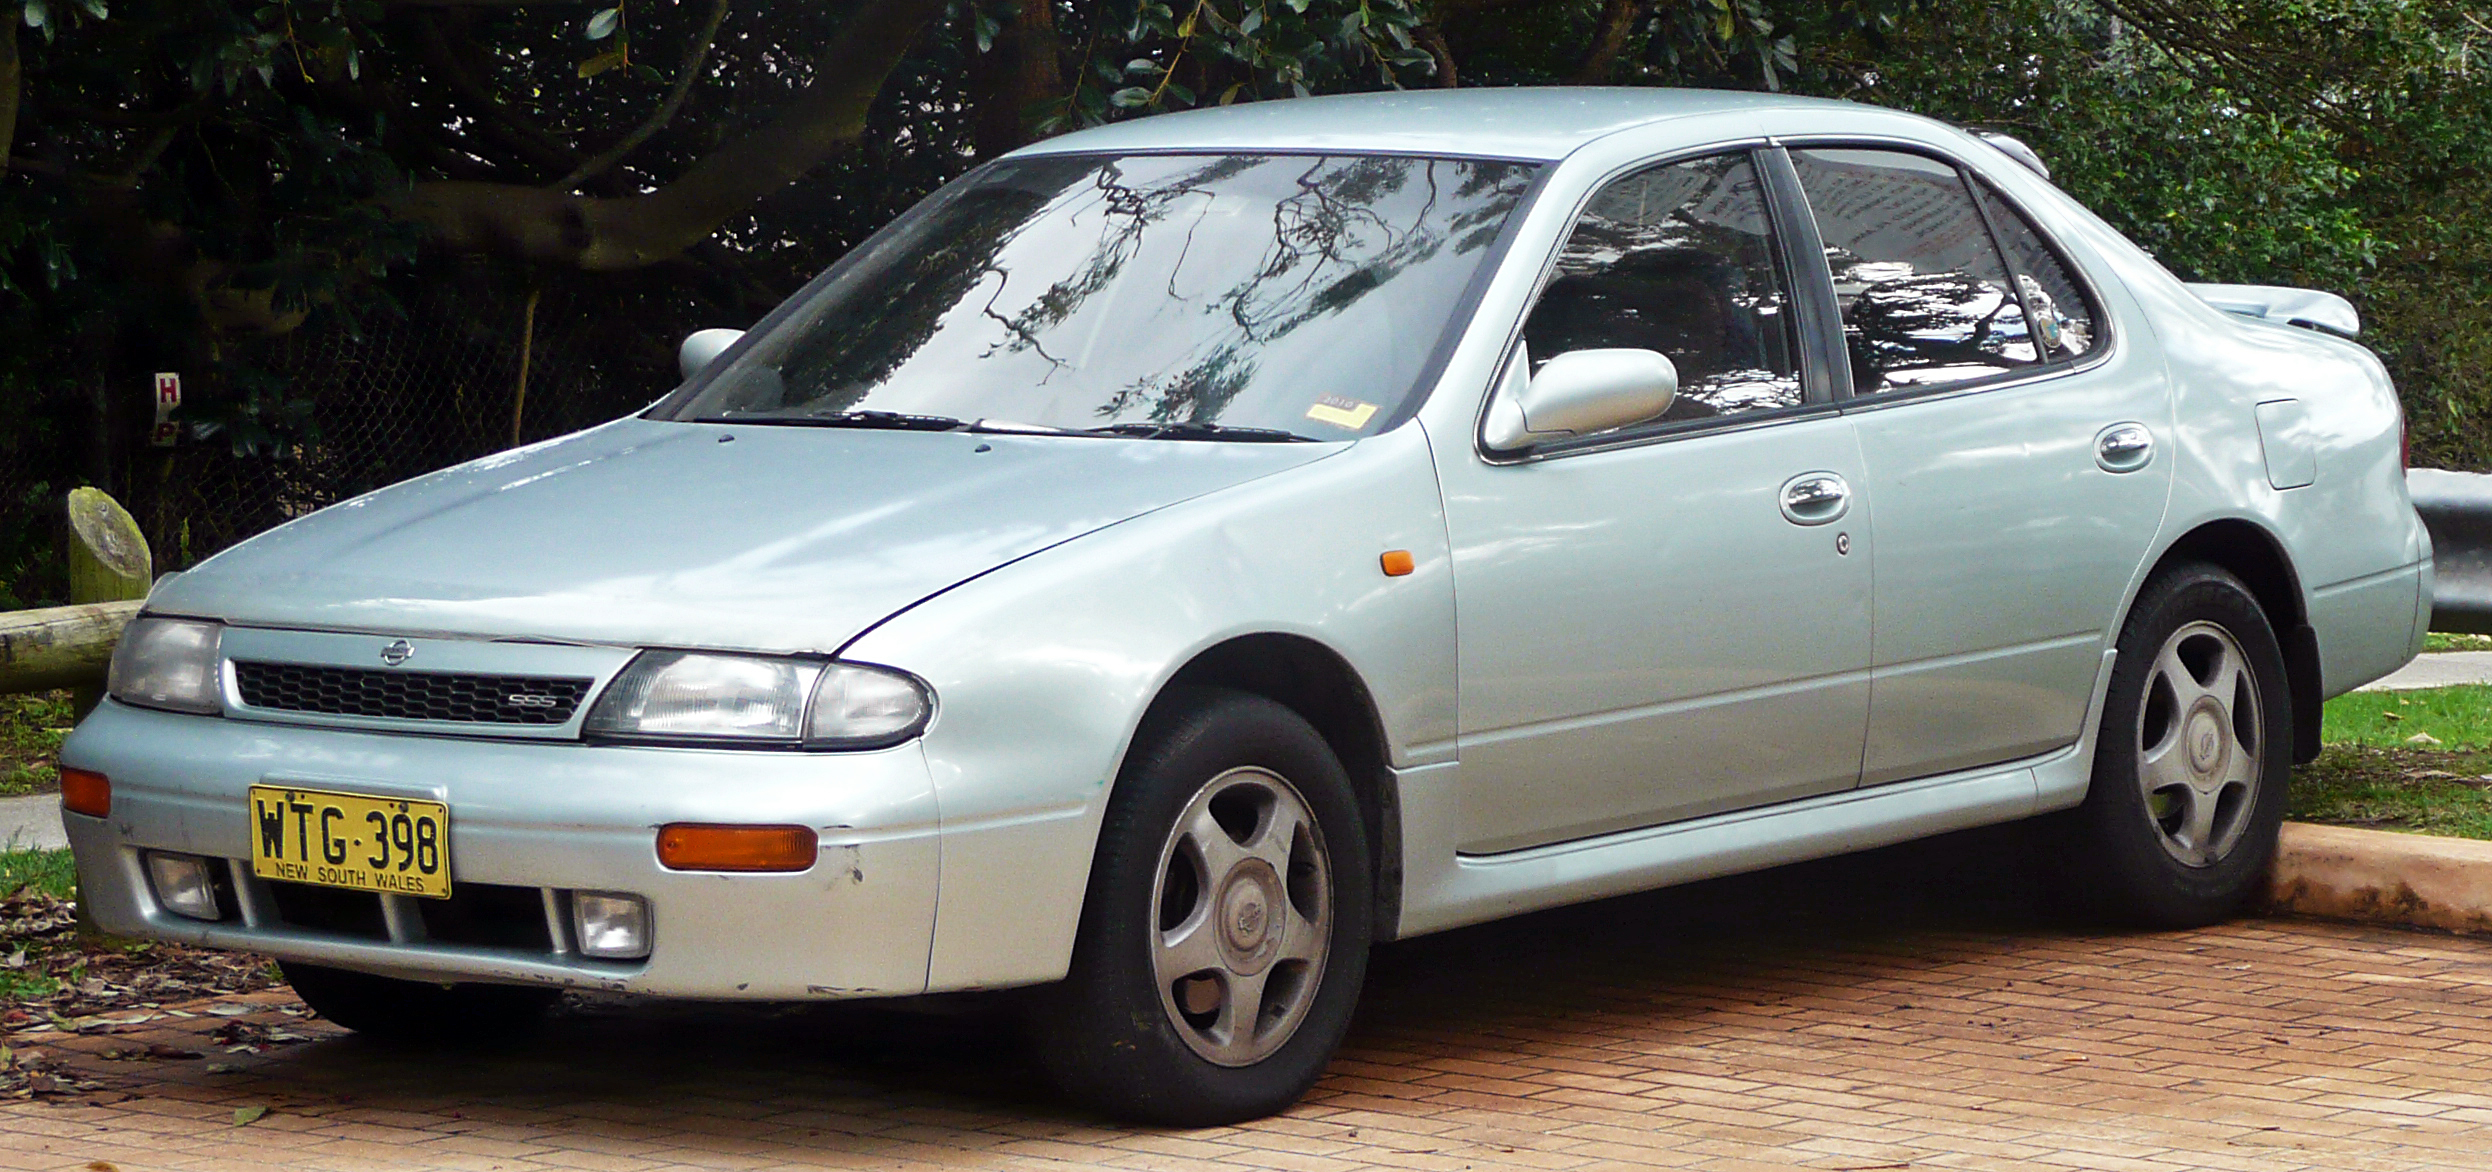 Description 1993-1995 Nissan Bluebird (U13) SSS sedan 02.jpg